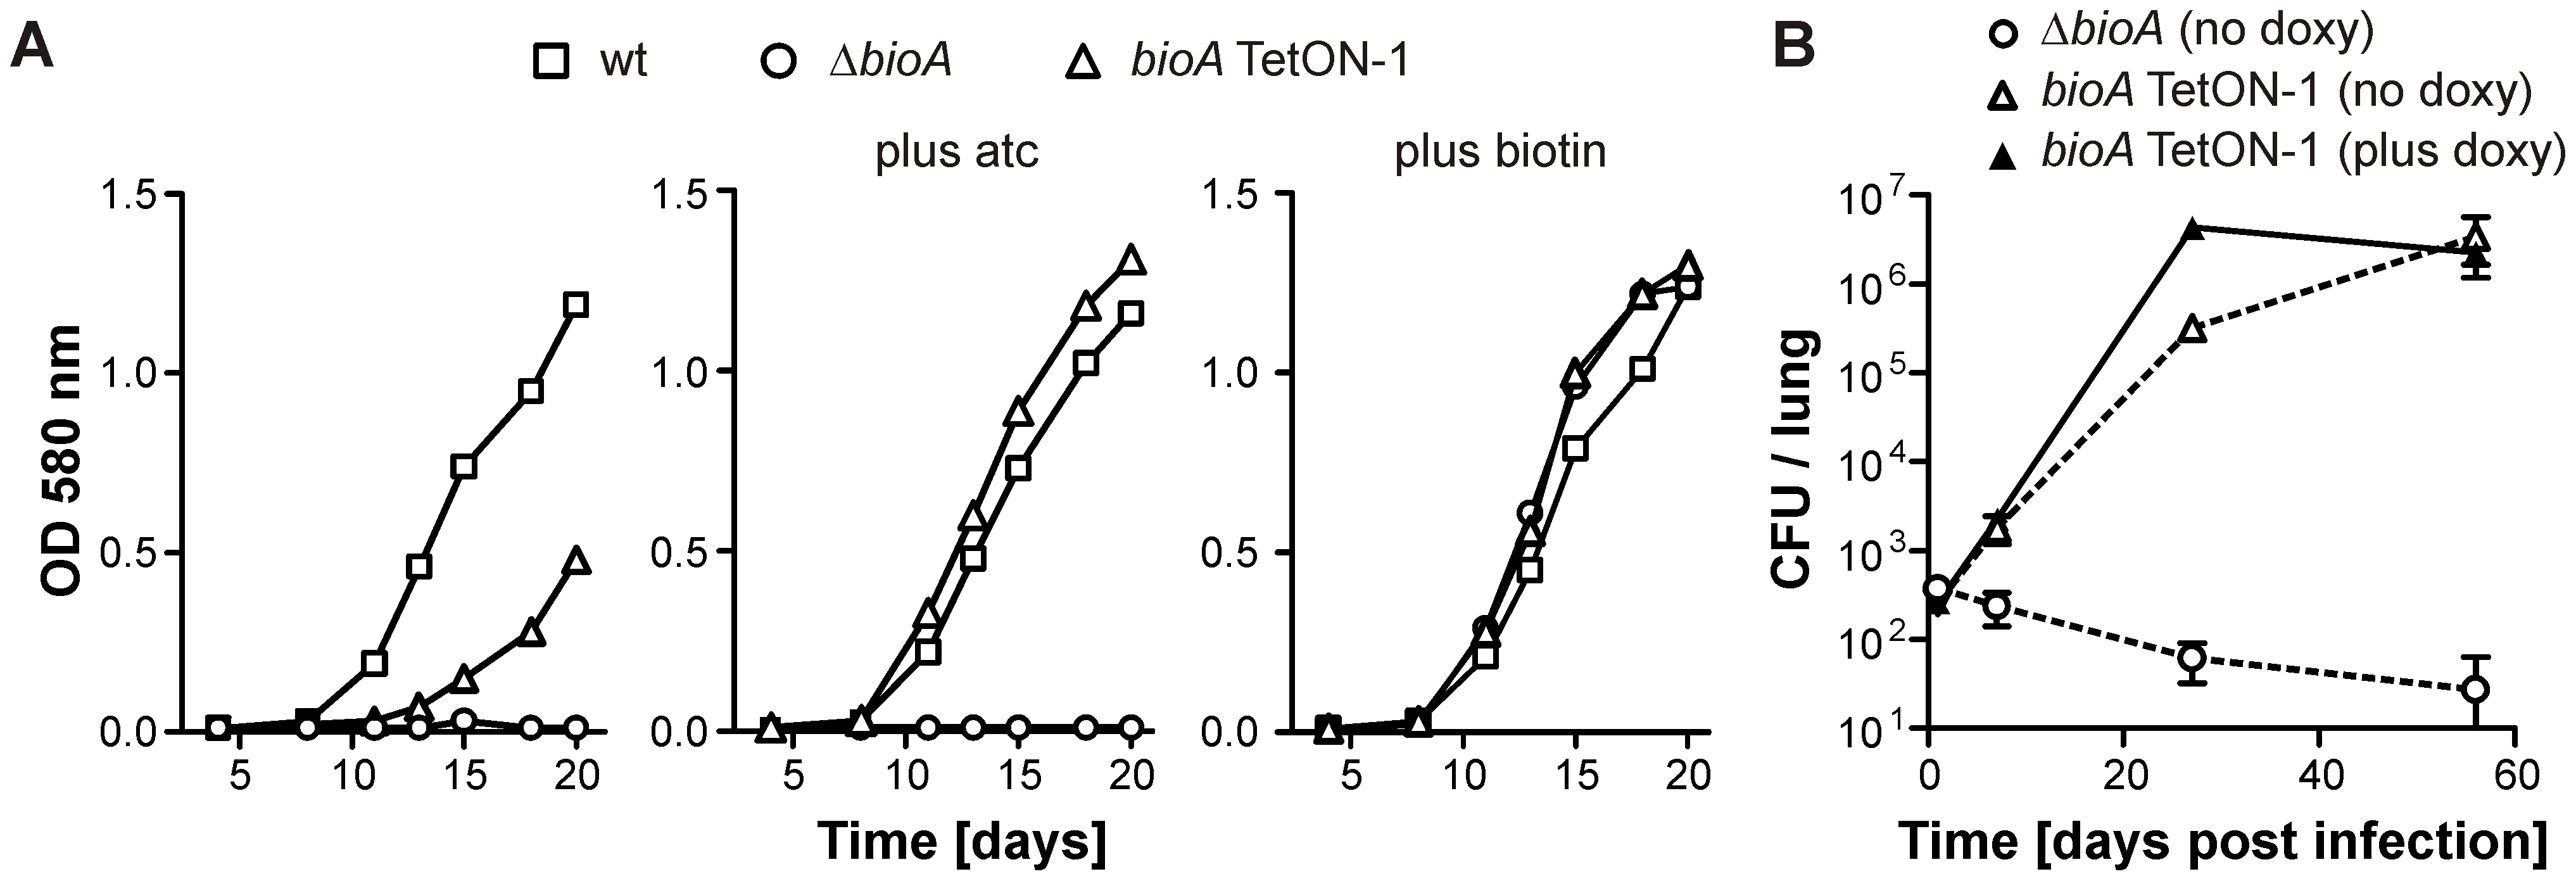 Growth of wt <i>Mtb</i>, <i>ΔbioA</i>, and <i>bioA</i> TetON-1 in liquid media and mice.